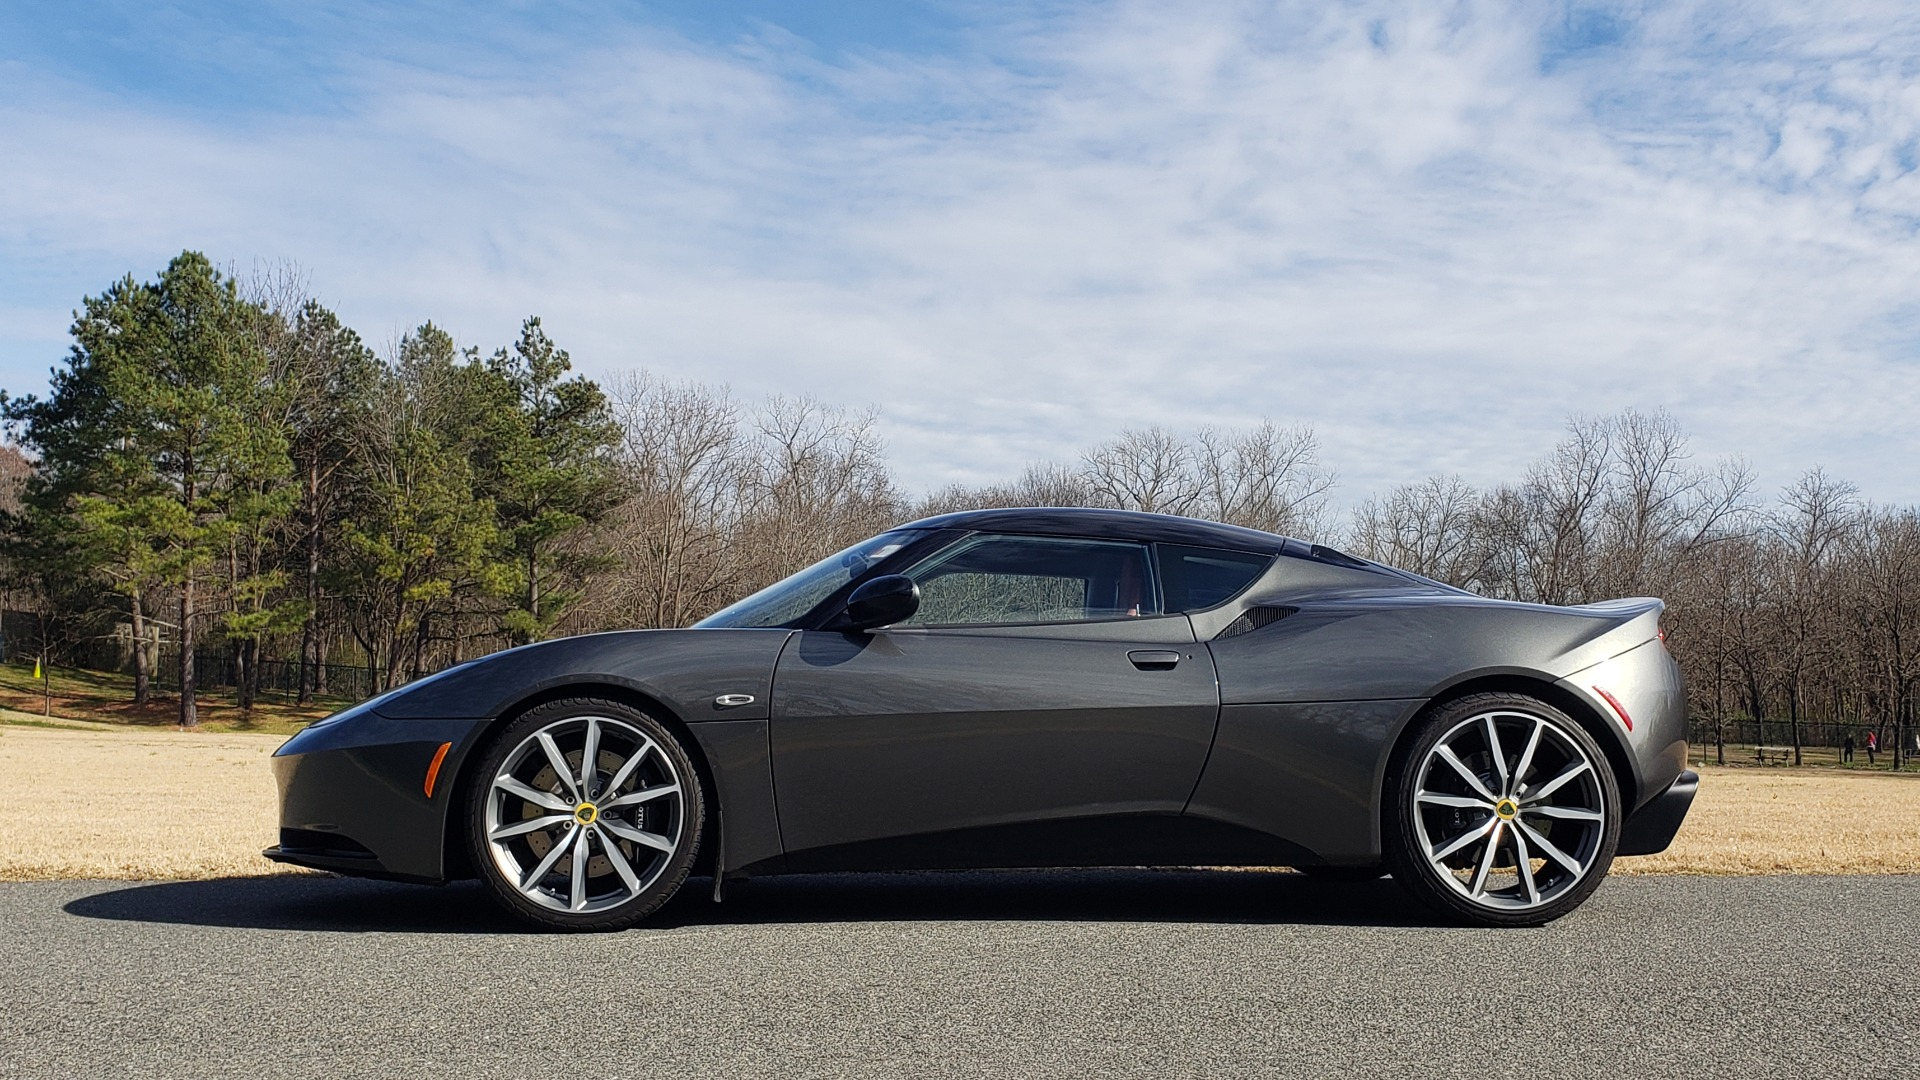 Used 2011 Lotus EVORA S 2+2 / 3.5L V6 / 6-SPD MANUAL / PIONEER / REARVIEW / LOW MILES for sale Sold at Formula Imports in Charlotte NC 28227 4